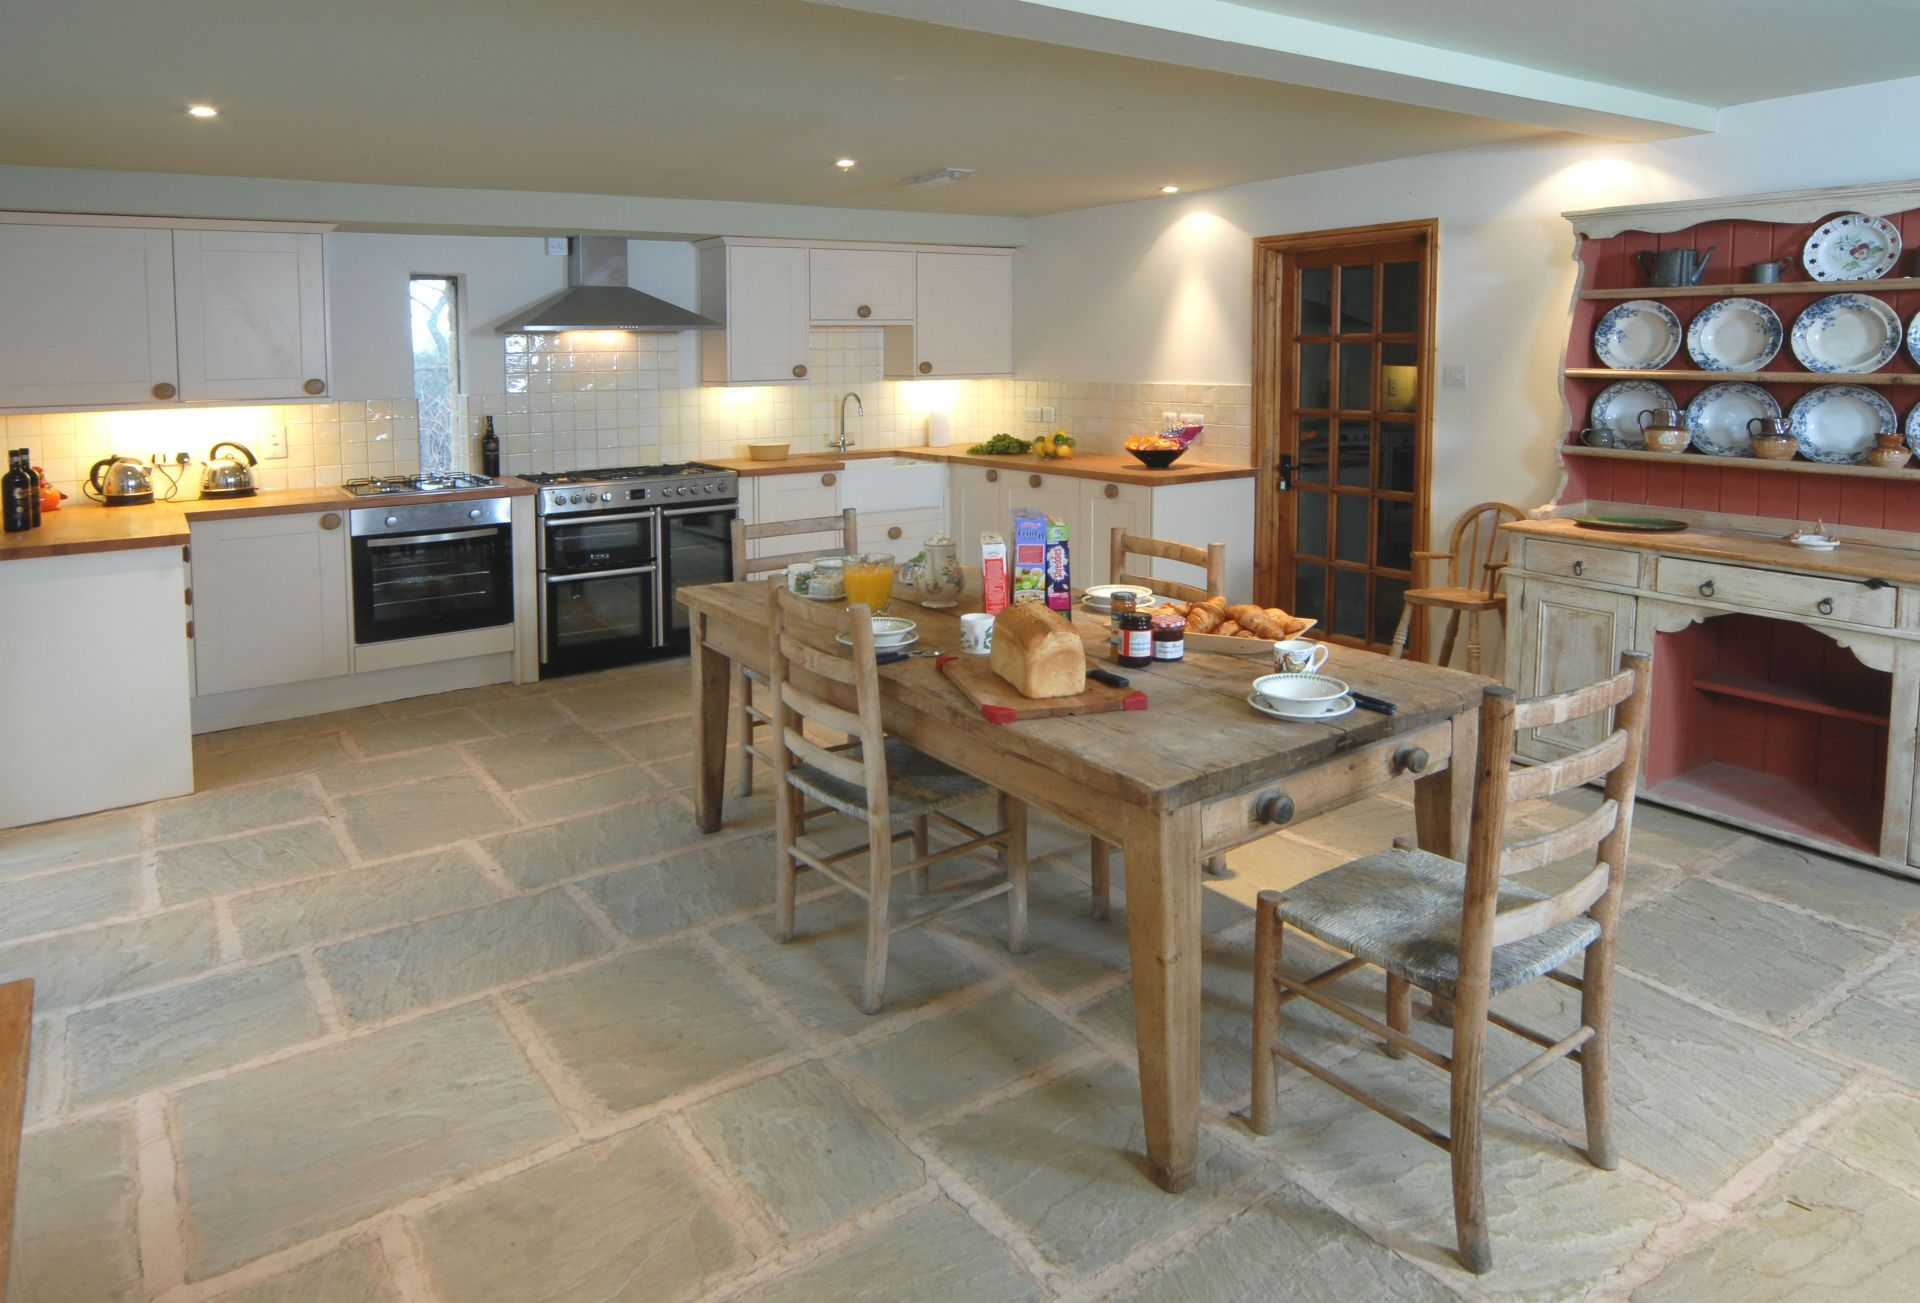 Watery Park Barn Ground floor: Large kitchen with dining area